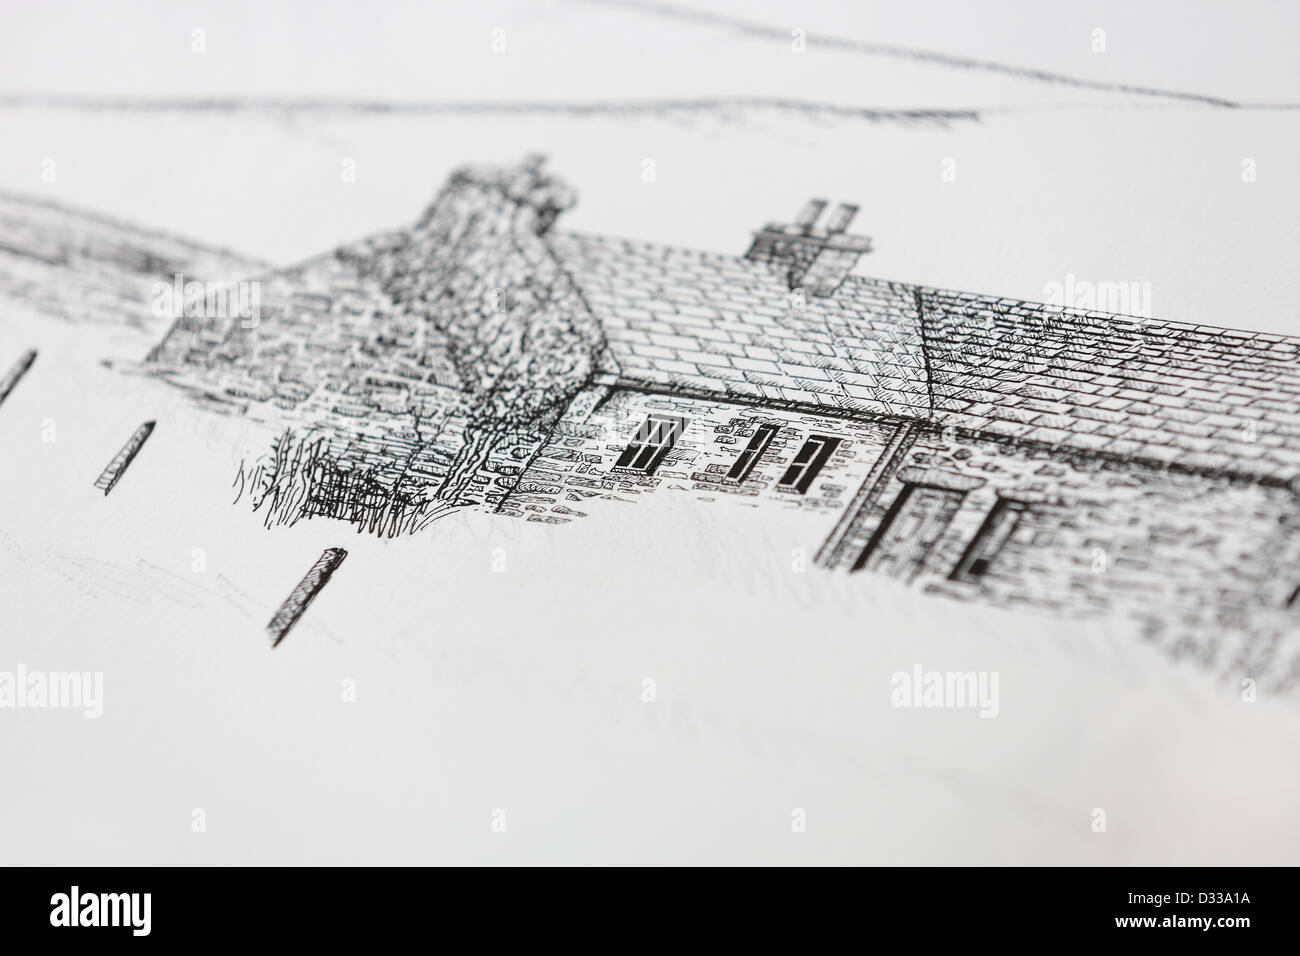 Artist Drawing Sketching In Studio Pen And Ink Line Of Old Scottish Cottage Architecture Orkney Islands